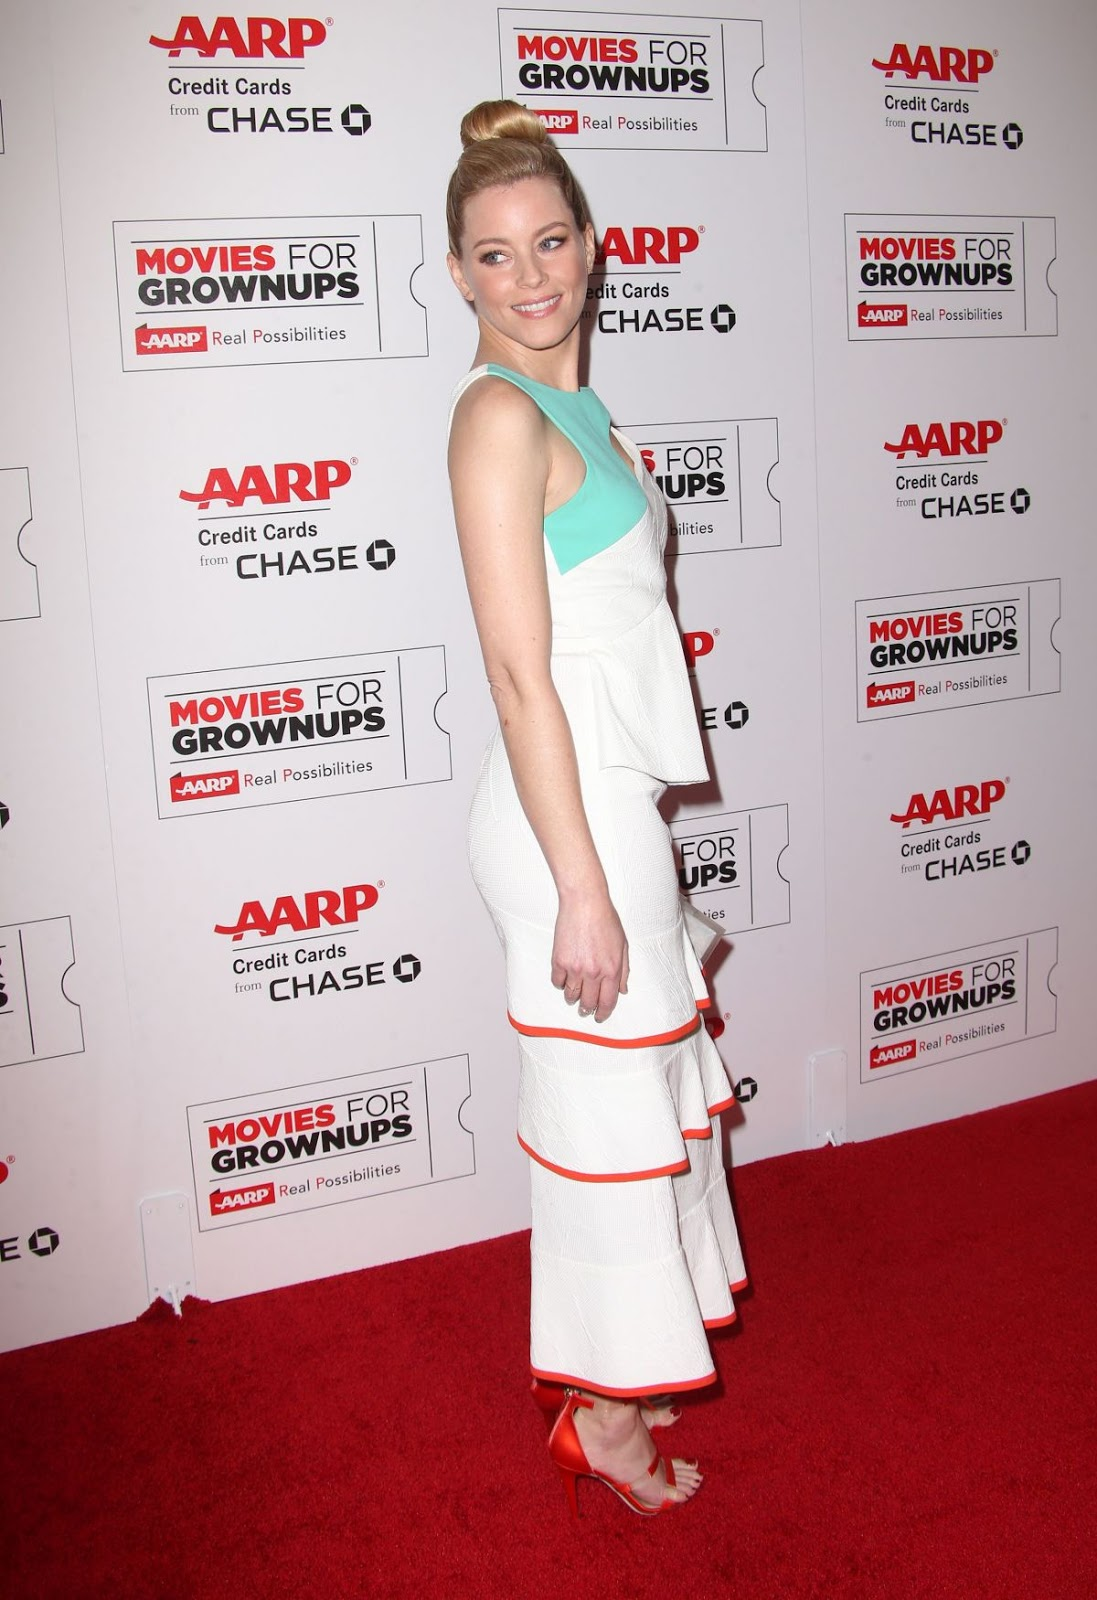 Power Rangers actress Elizabeth Banks at 15th Annual Movies for Grownups Awards at Beverly Hills